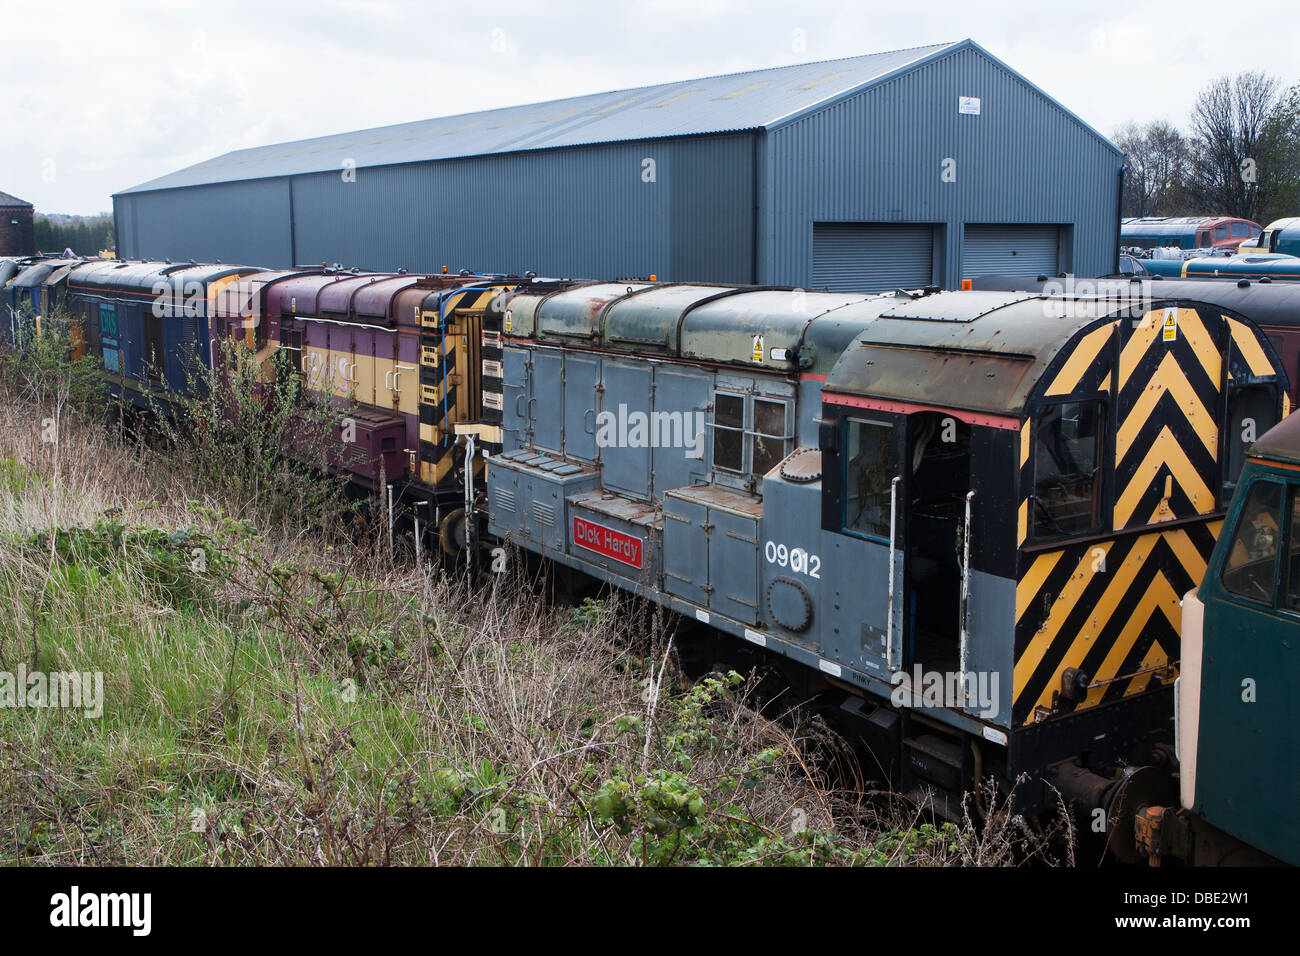 Scrapped Diesel locomotives waiting for restoration at the Barrow Hill Engine Shed, Chesterfield, Derbyshire - Stock Image